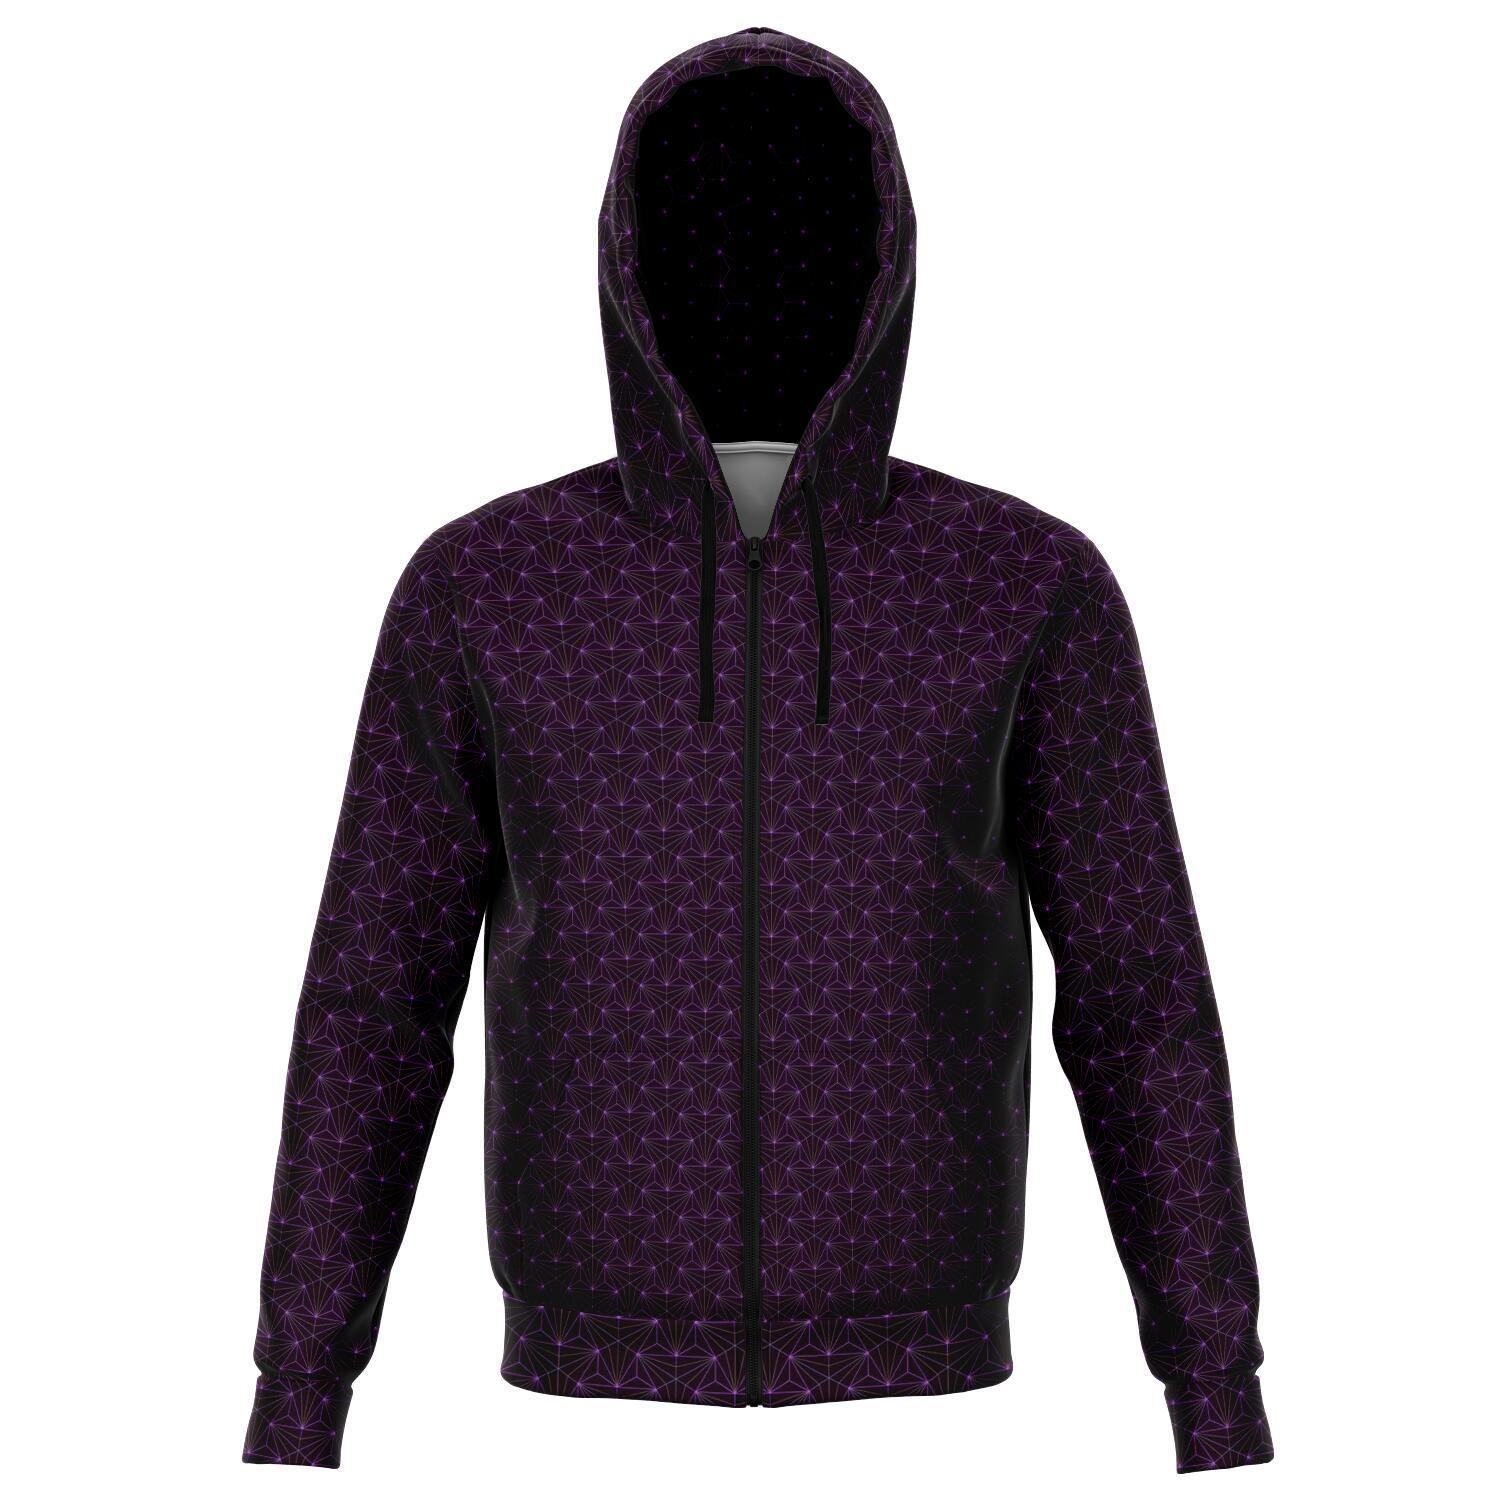 AMETHYST SACRED CONNECTIONS PREMIUM ZIP UP HOODIE